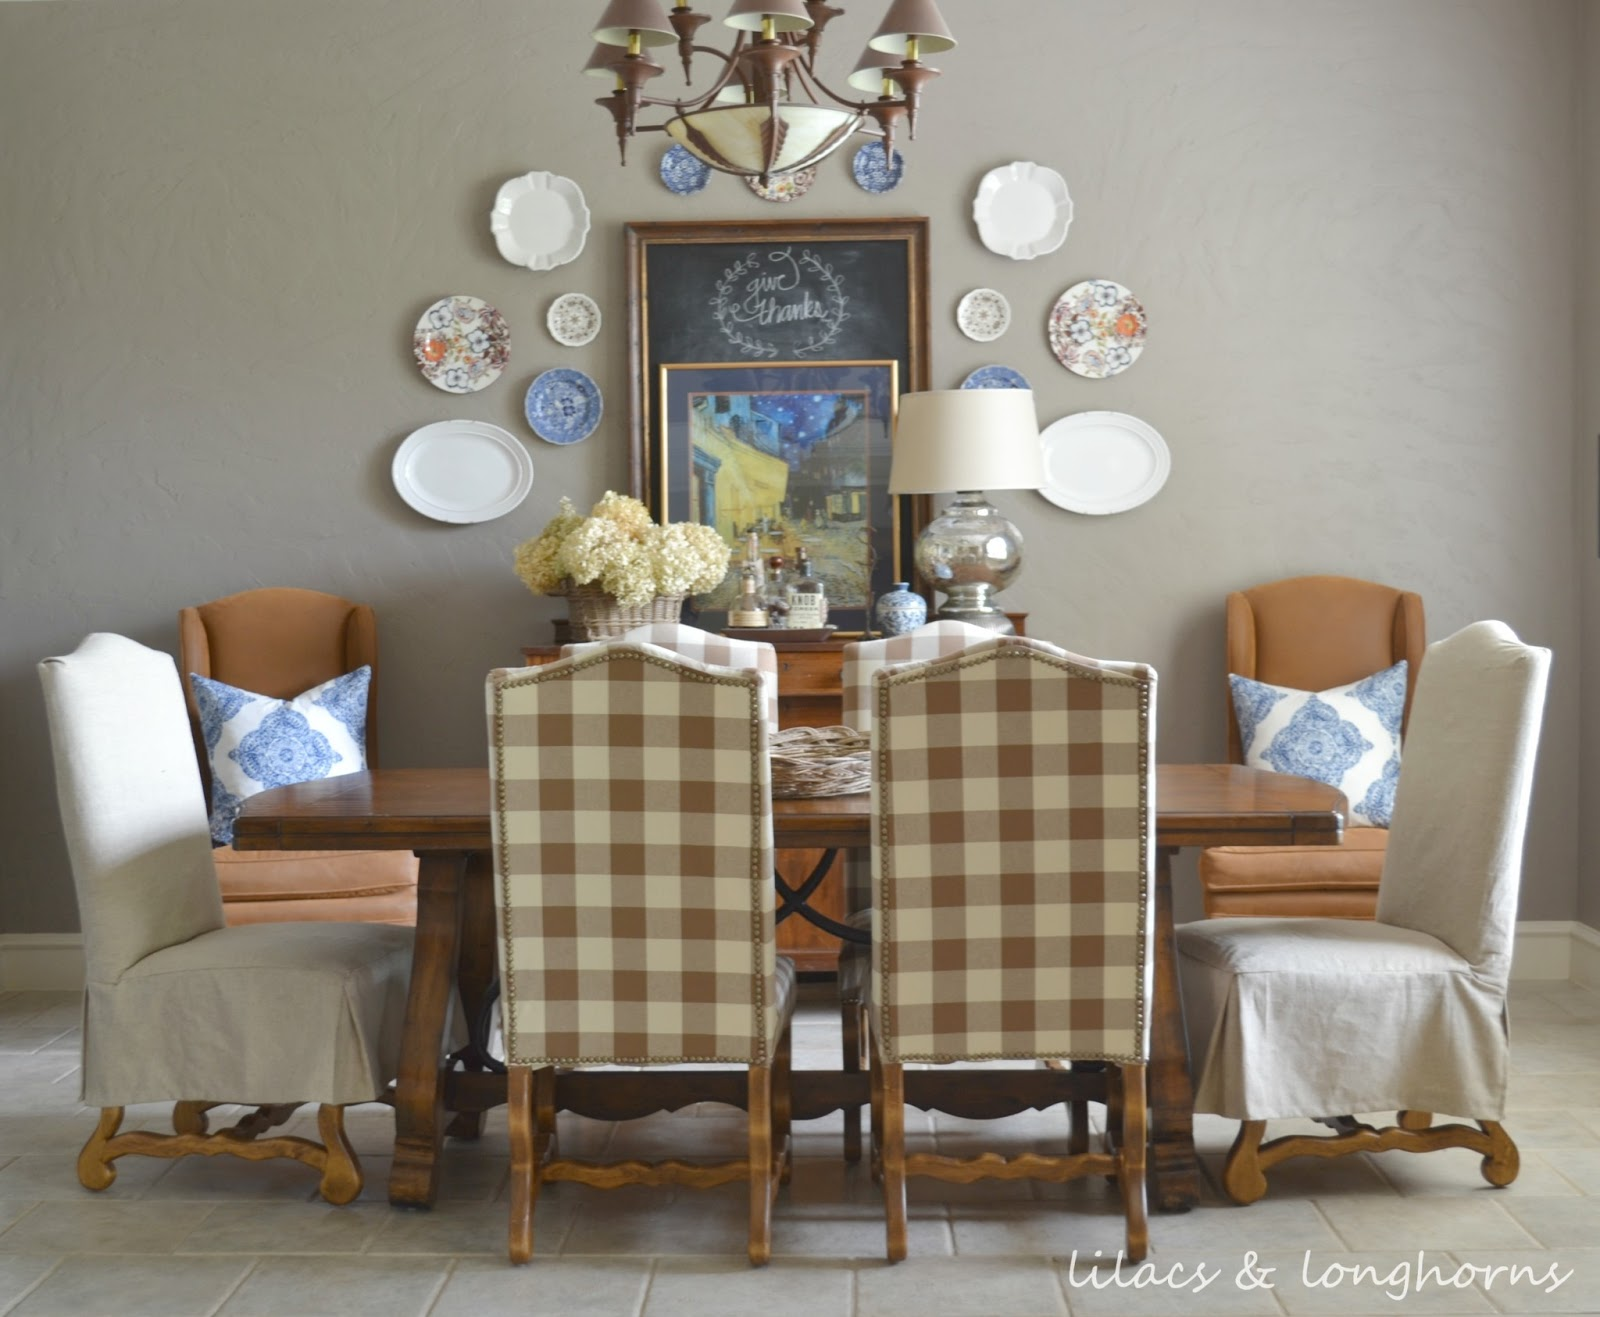 Savvy Southern Style: My Favorite Room.Lilacs and Longhorns